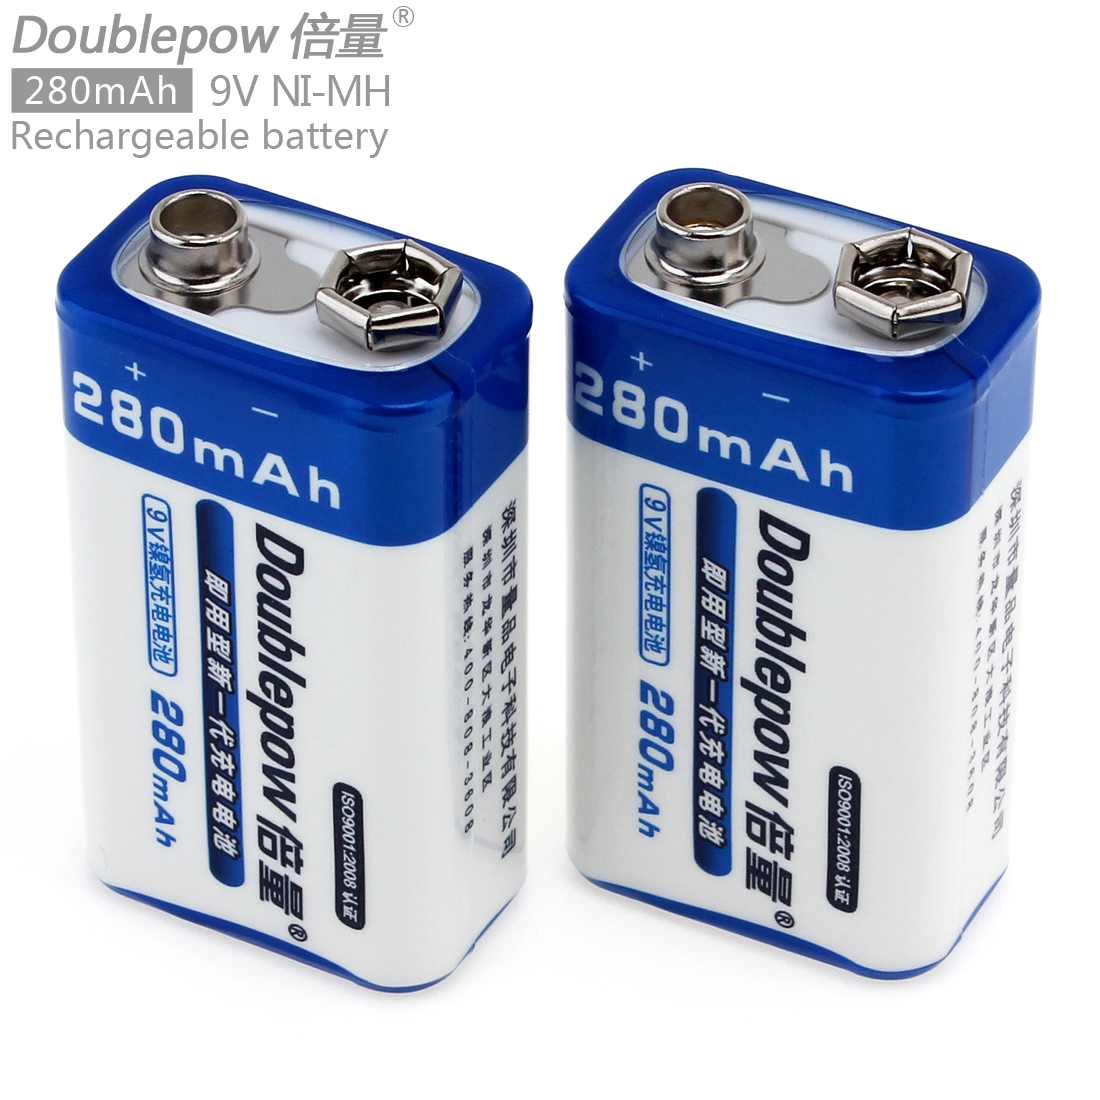 2pcs doublepow 9v ni mh 280mah rechargeable battery nimh. Black Bedroom Furniture Sets. Home Design Ideas